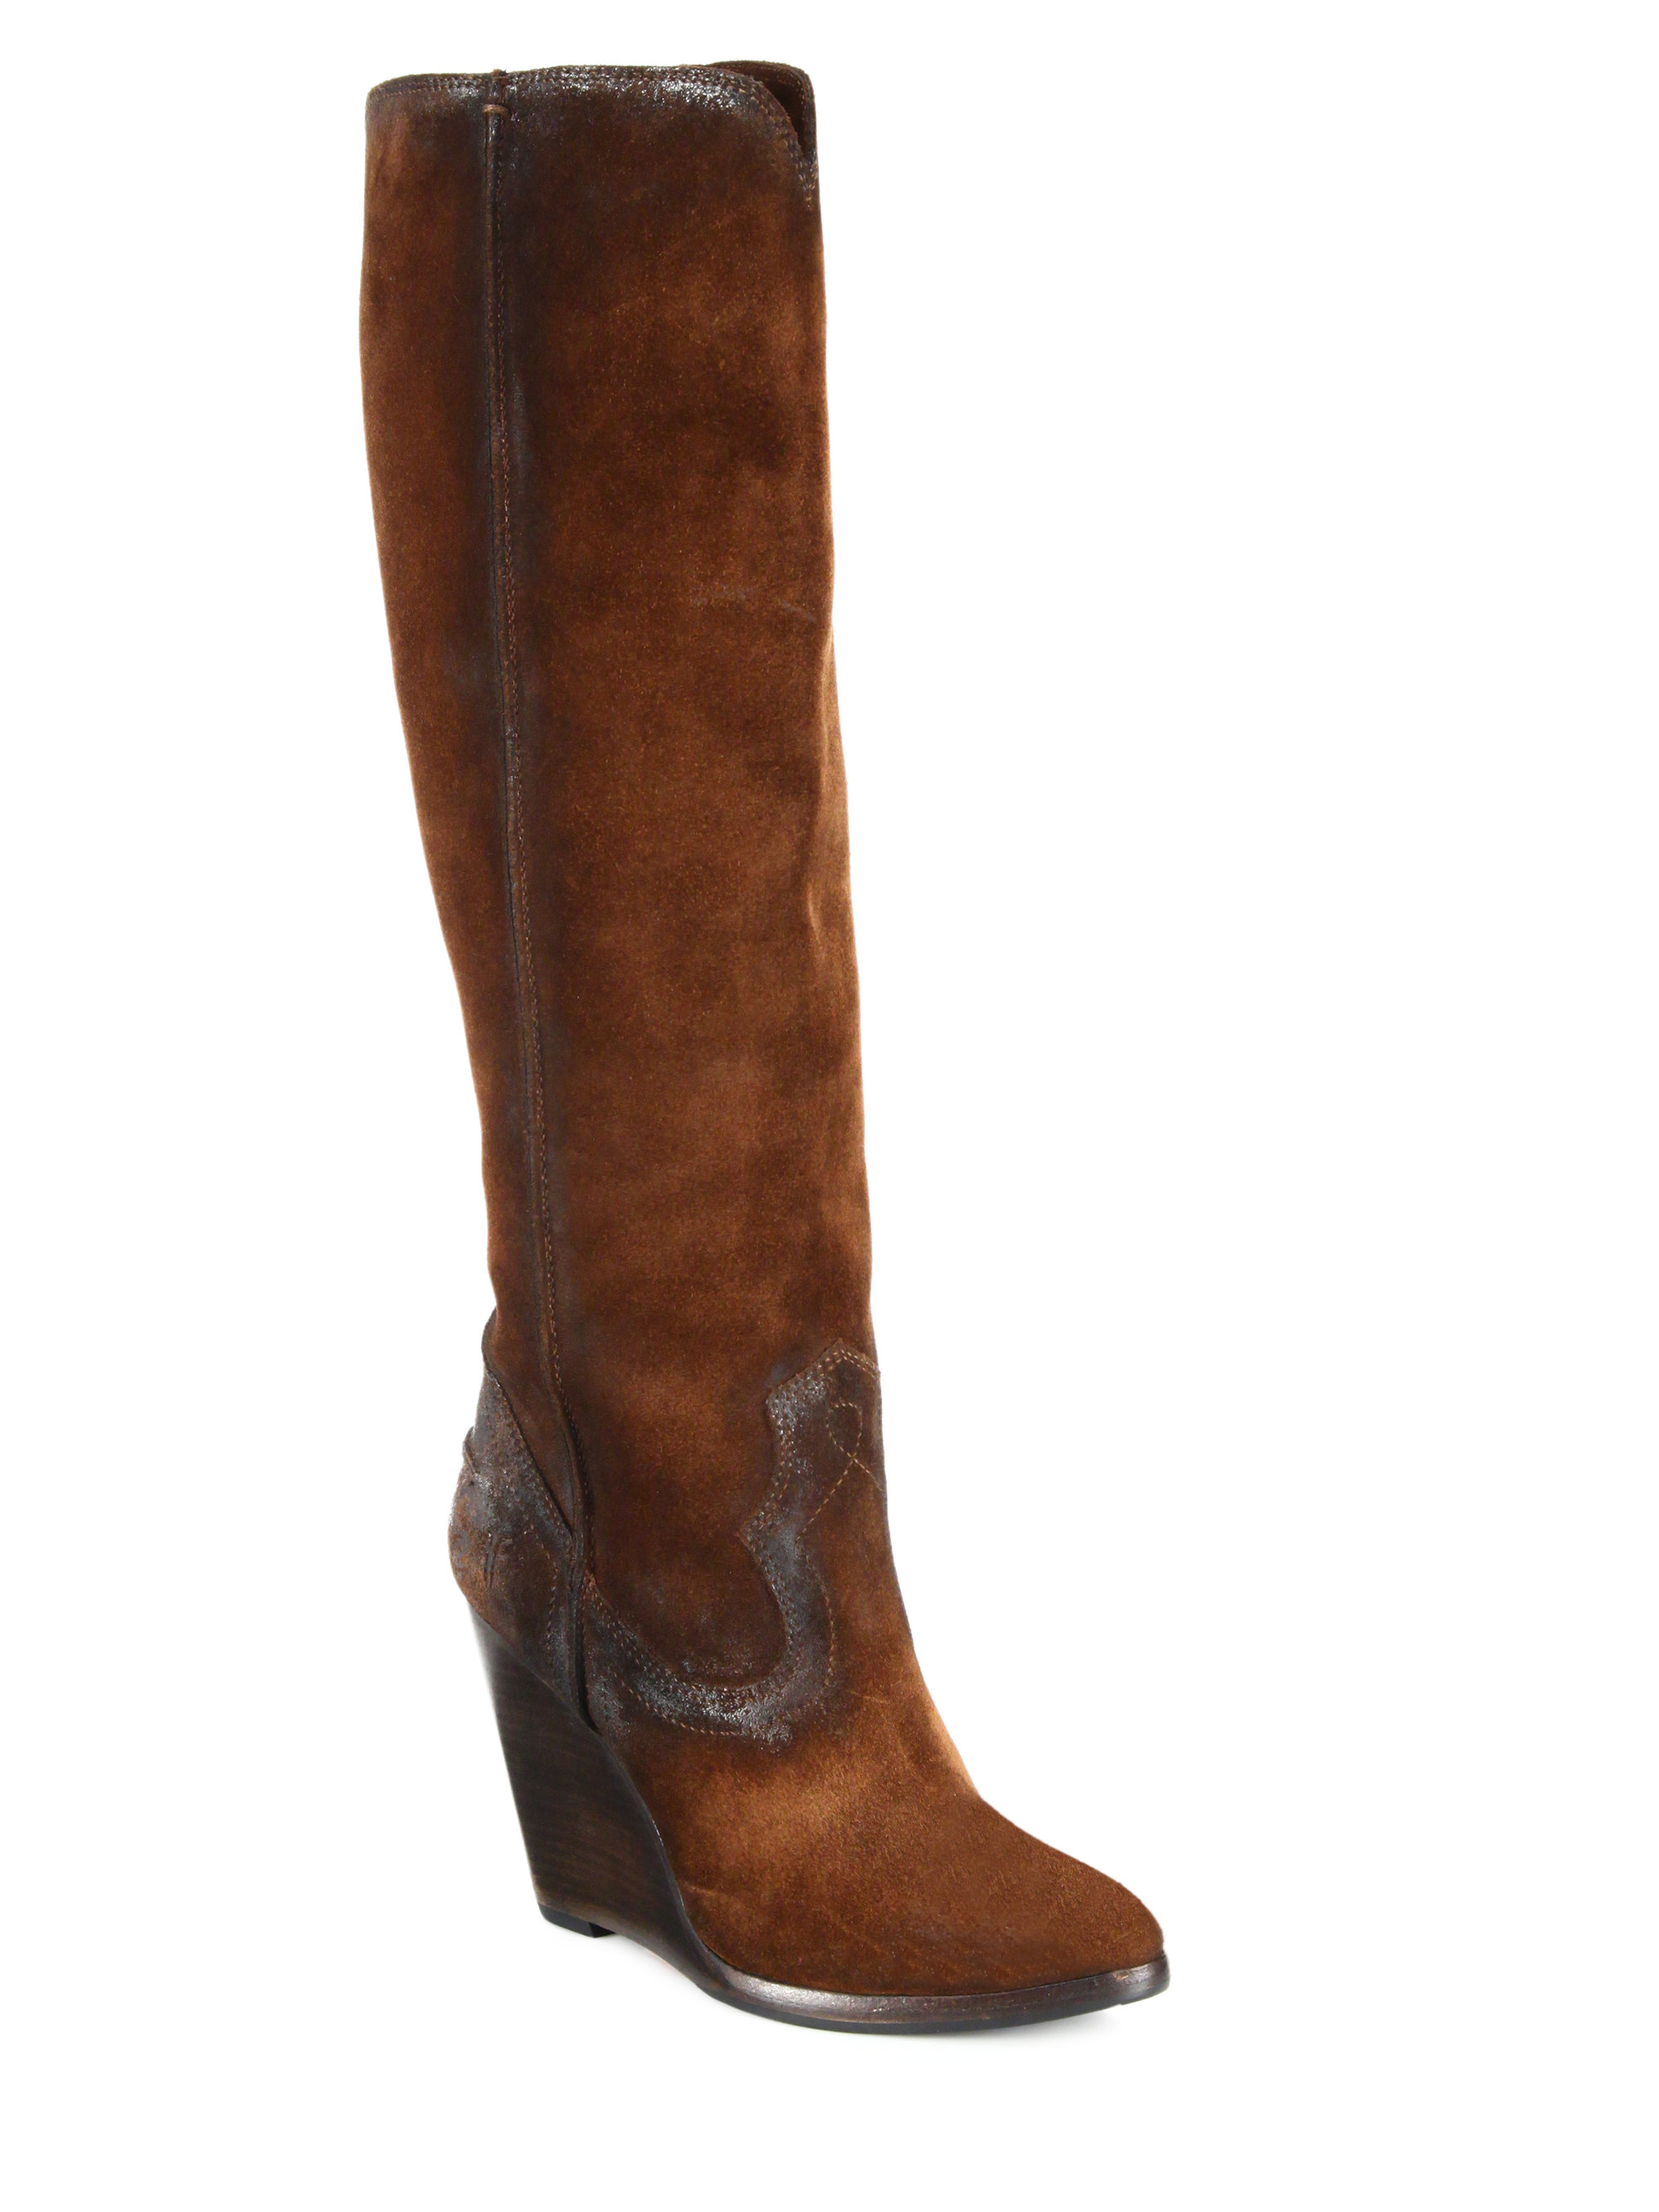 Frye Cece Seamed Suede Wedge Boots in Brown | Lyst